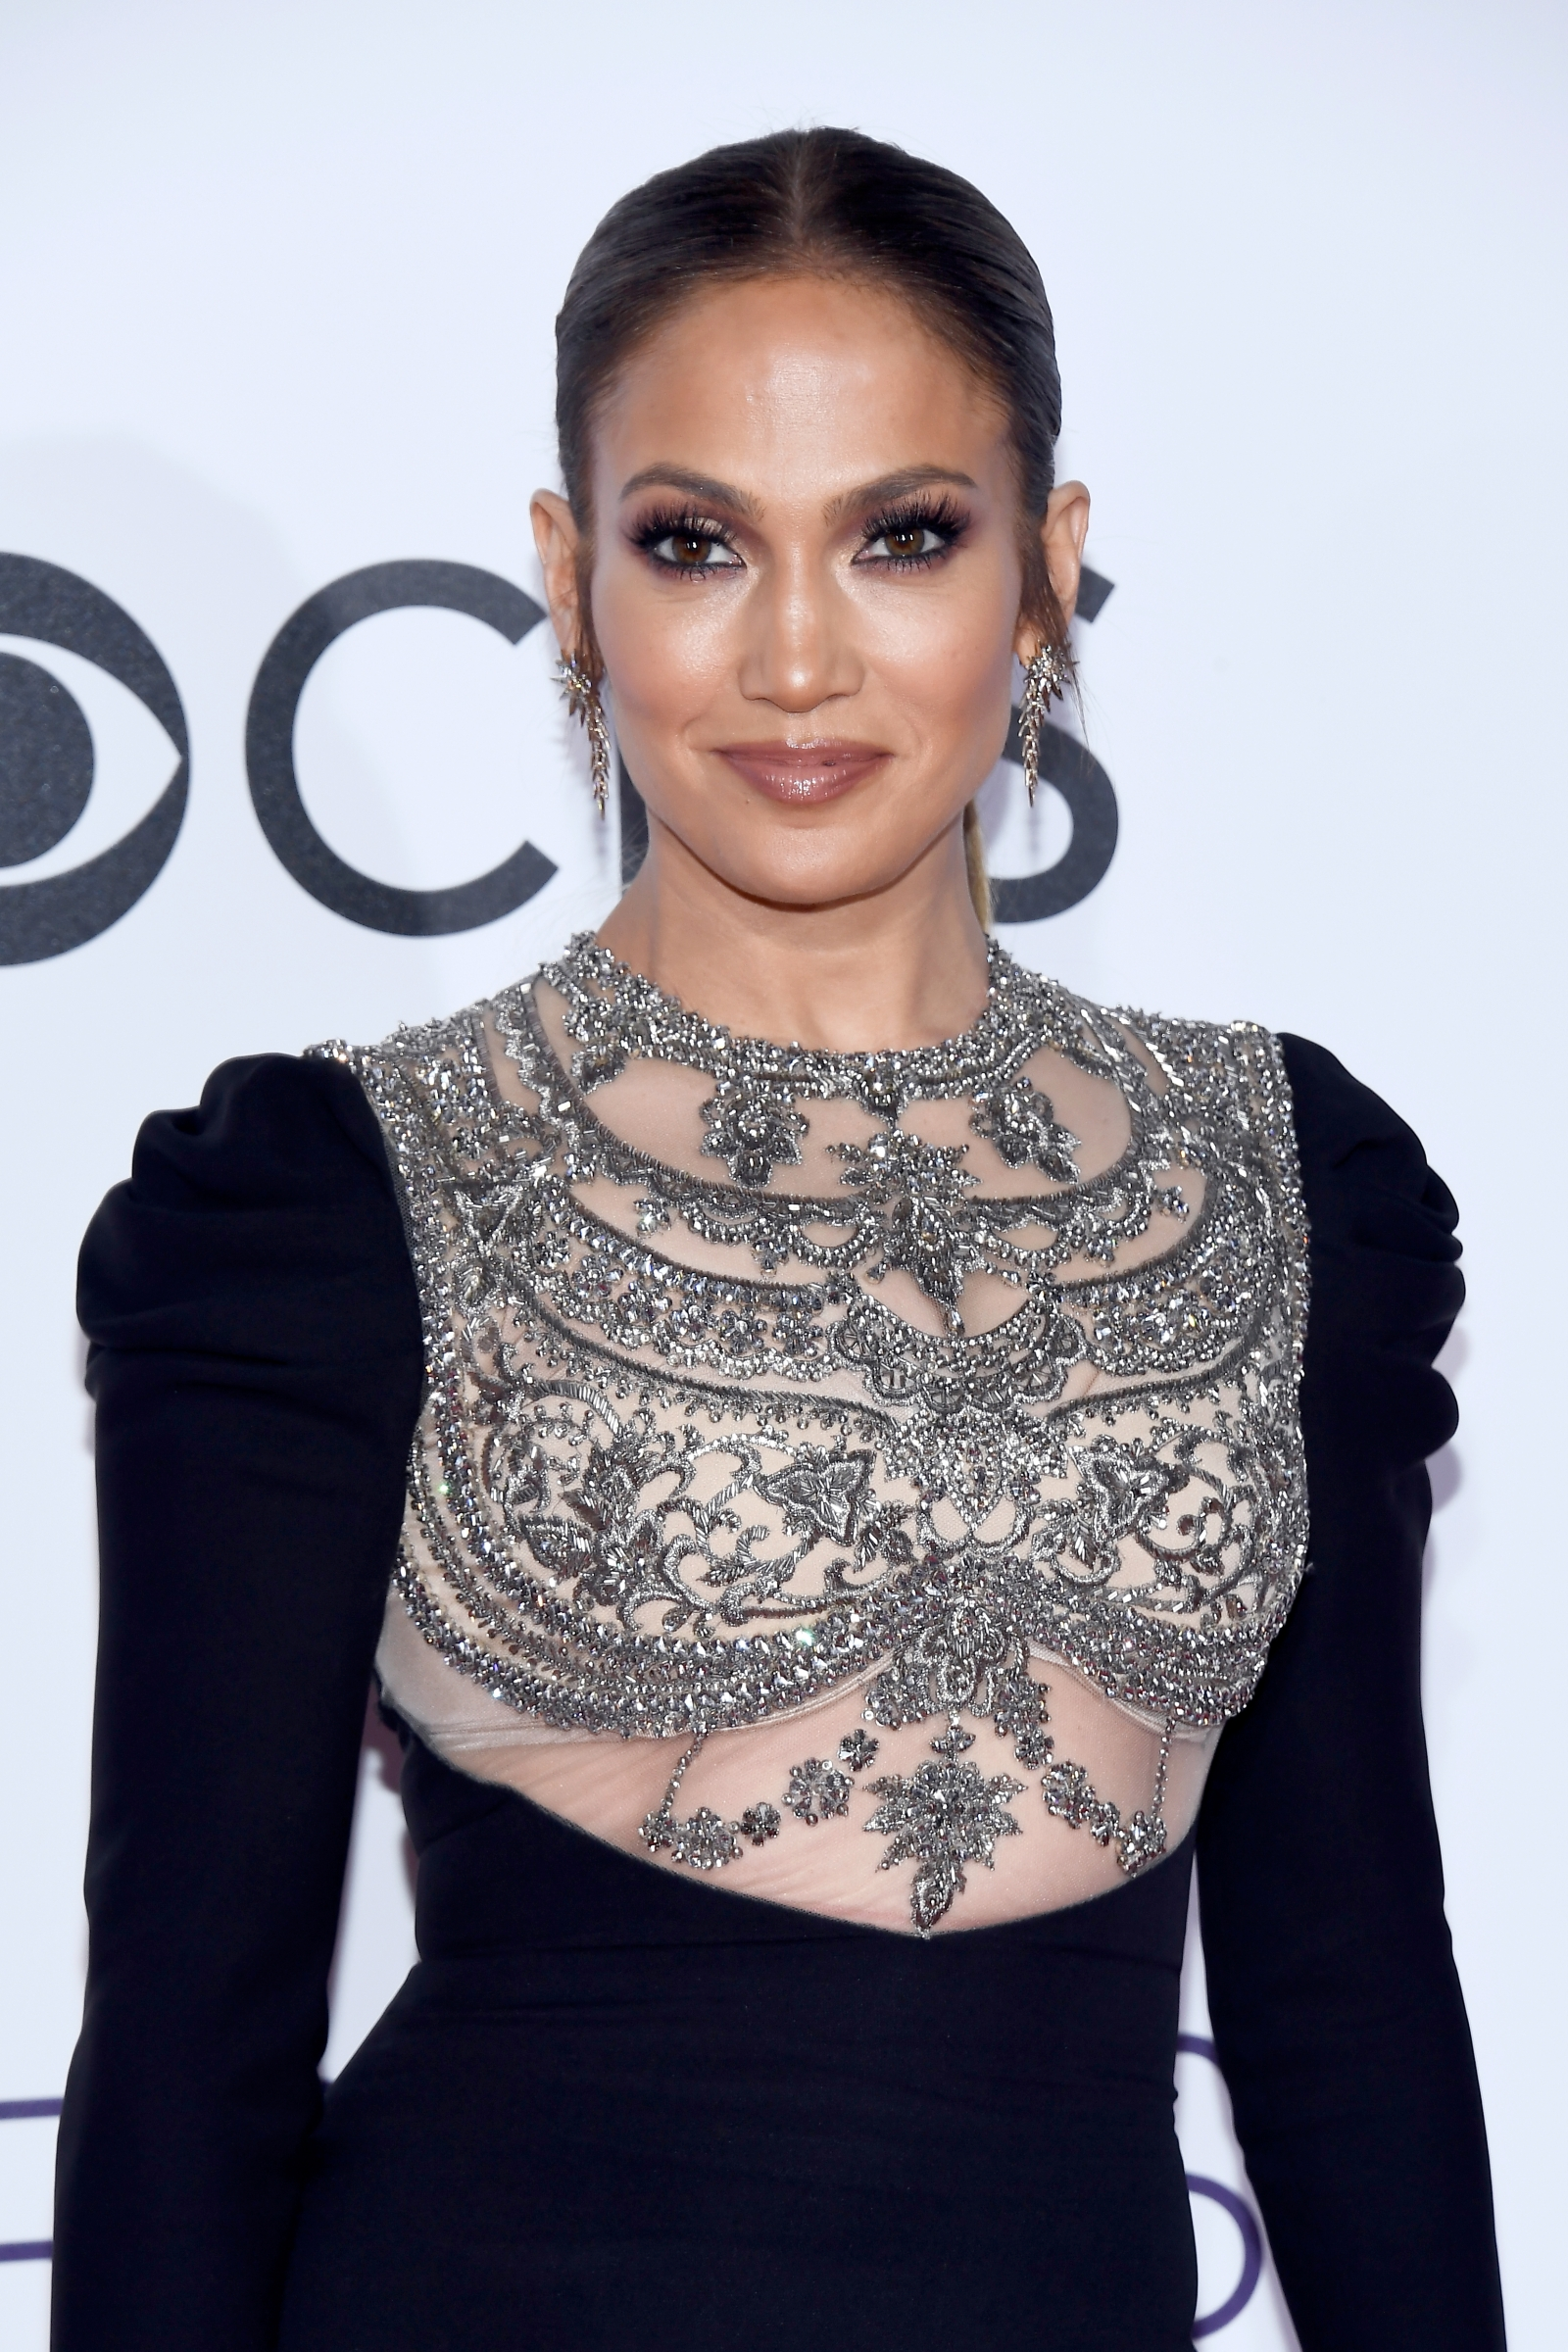 Jennifer Lopez reveals she has a crush on Harry Styles and talks about dating younger men